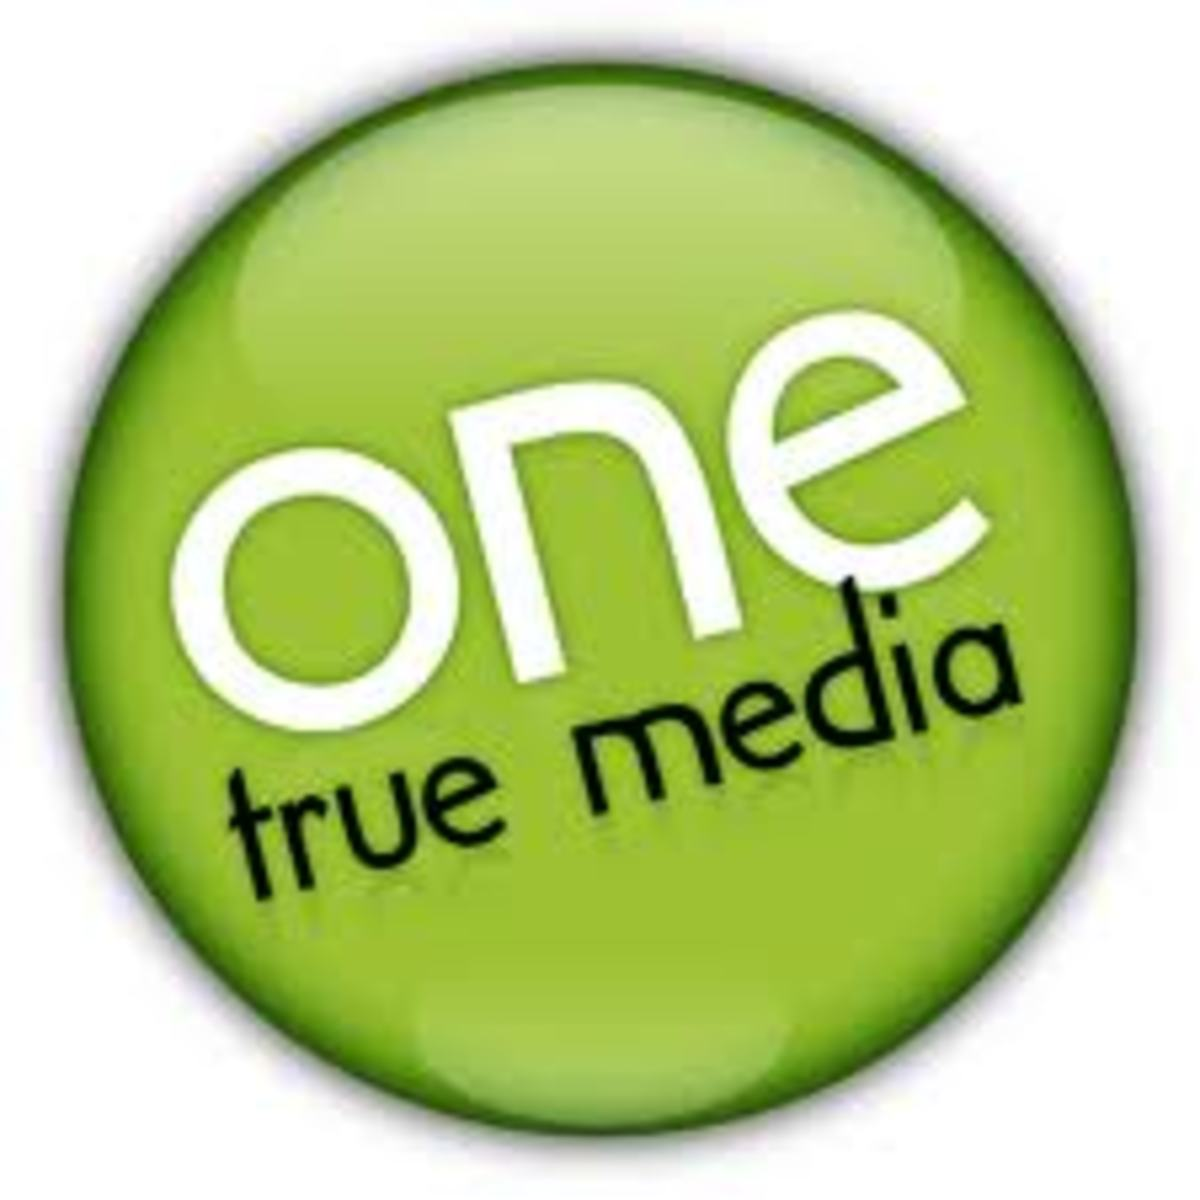 One True Media- A Free Site to Make Your Own Photo or Video Montage